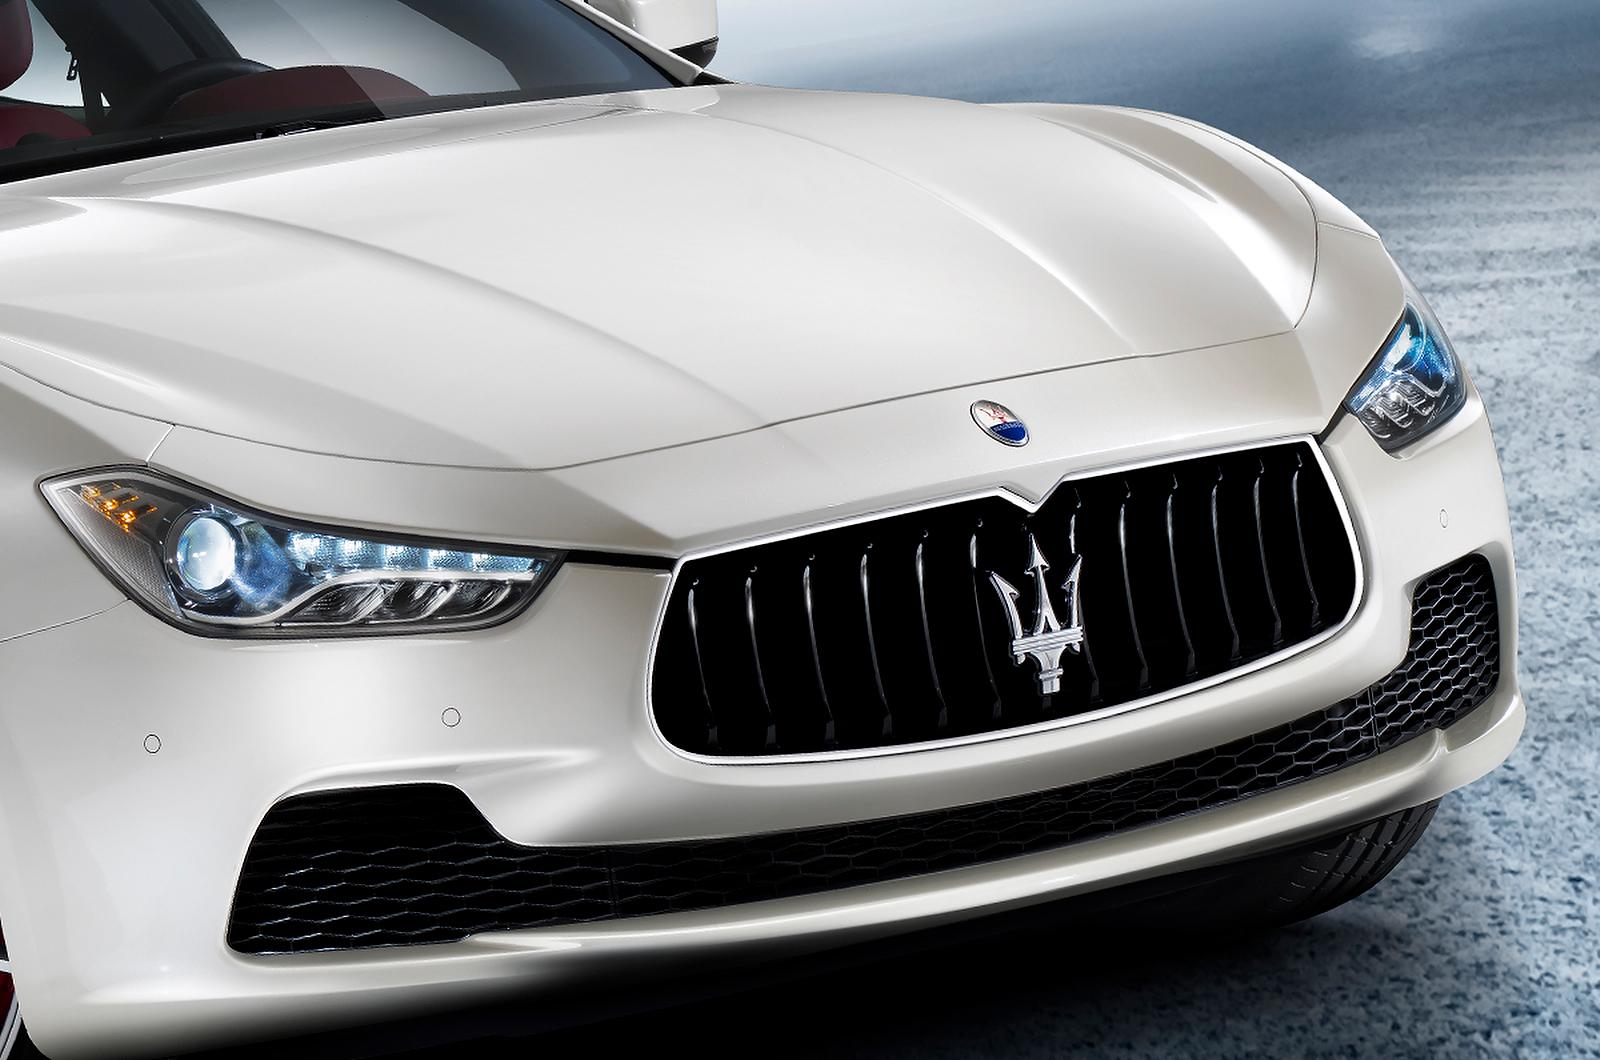 maserati ghibli official photos details released photo gallery Wallpapers HD